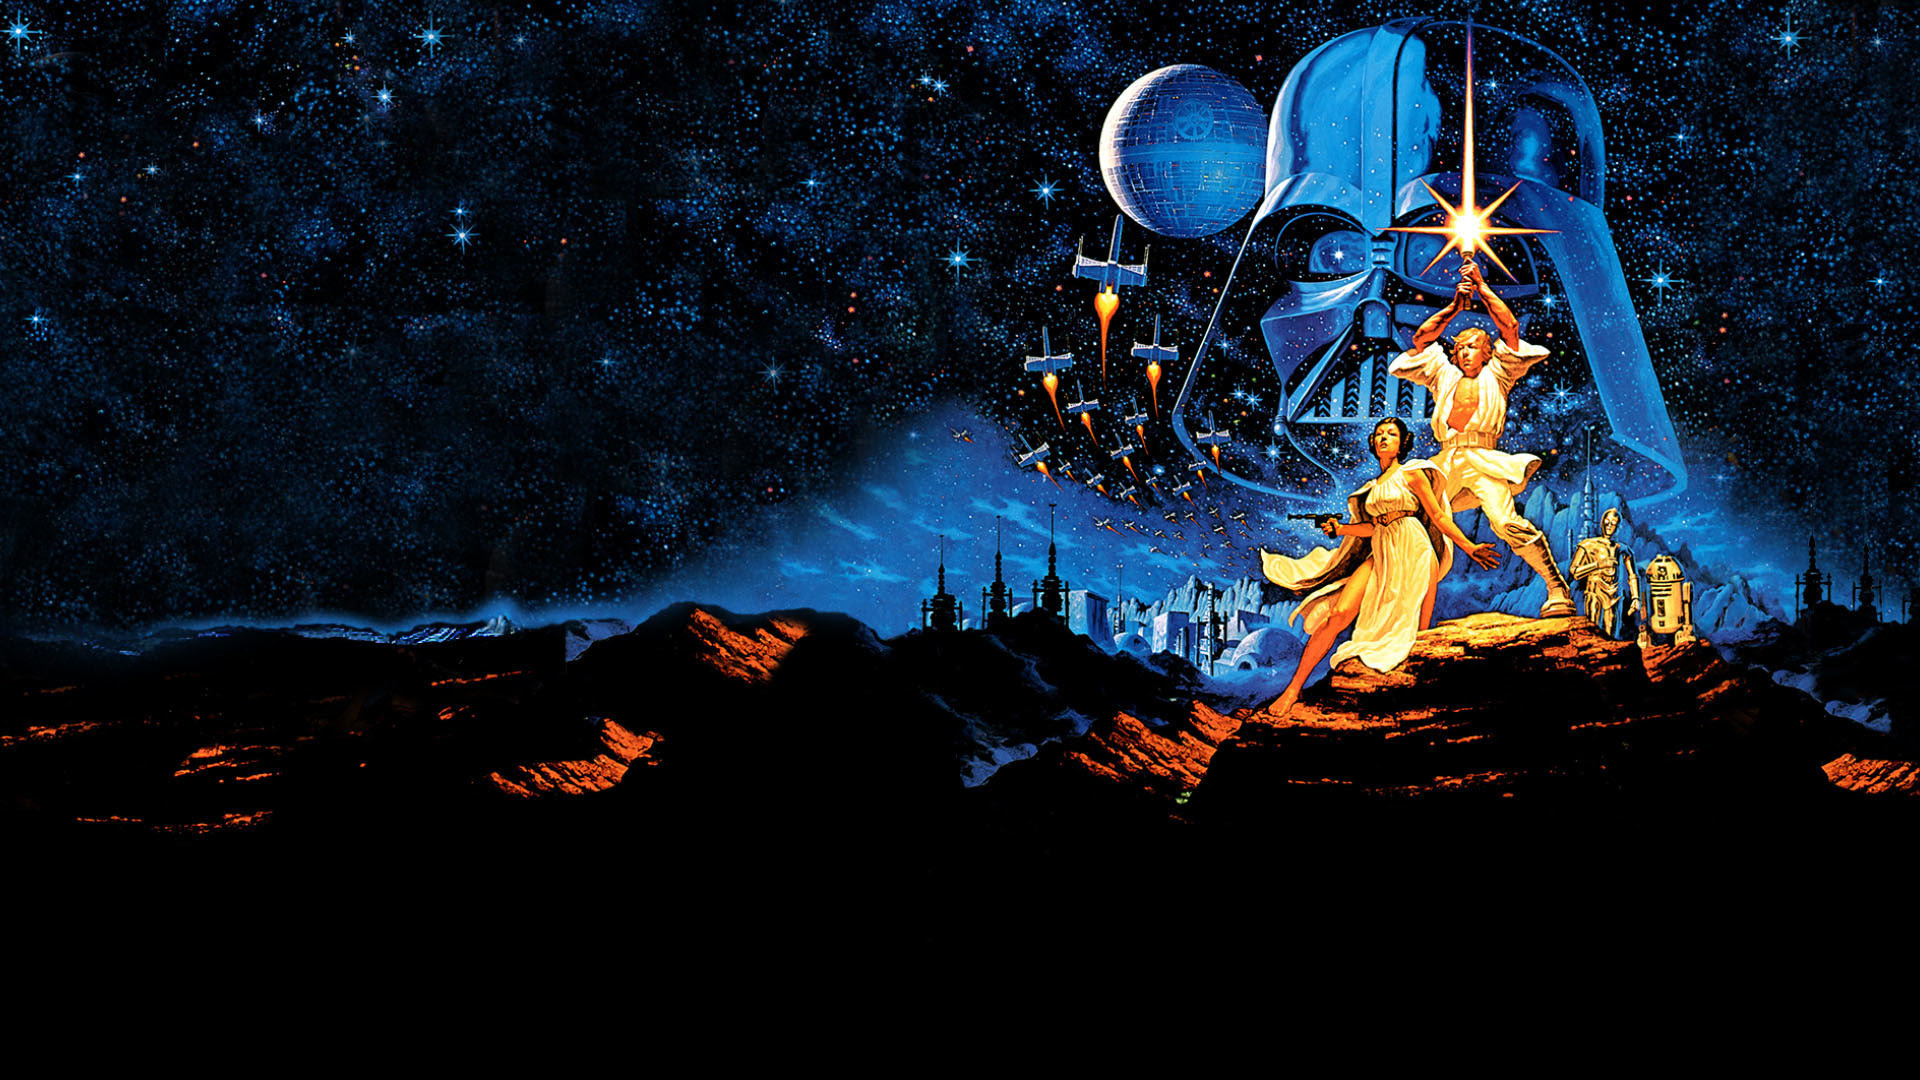 Cute Star Wars Wallpapers 76 Images